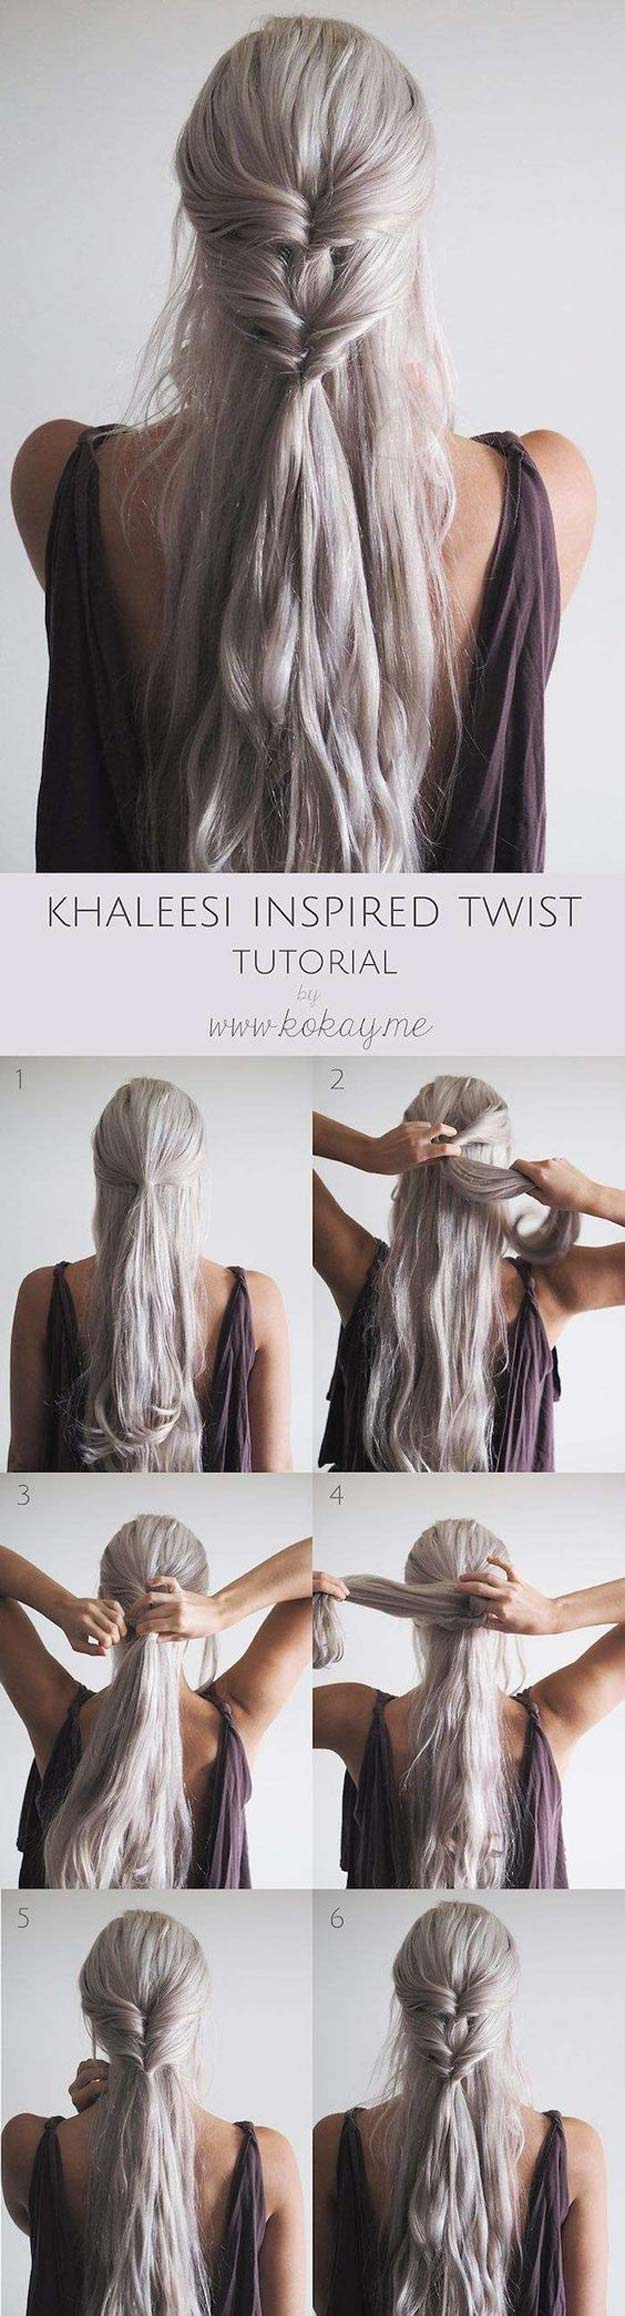 Best Hairstyles For Long Hair   Khaleesi Inspired Twist   Step By Step  Tutorials For Easy